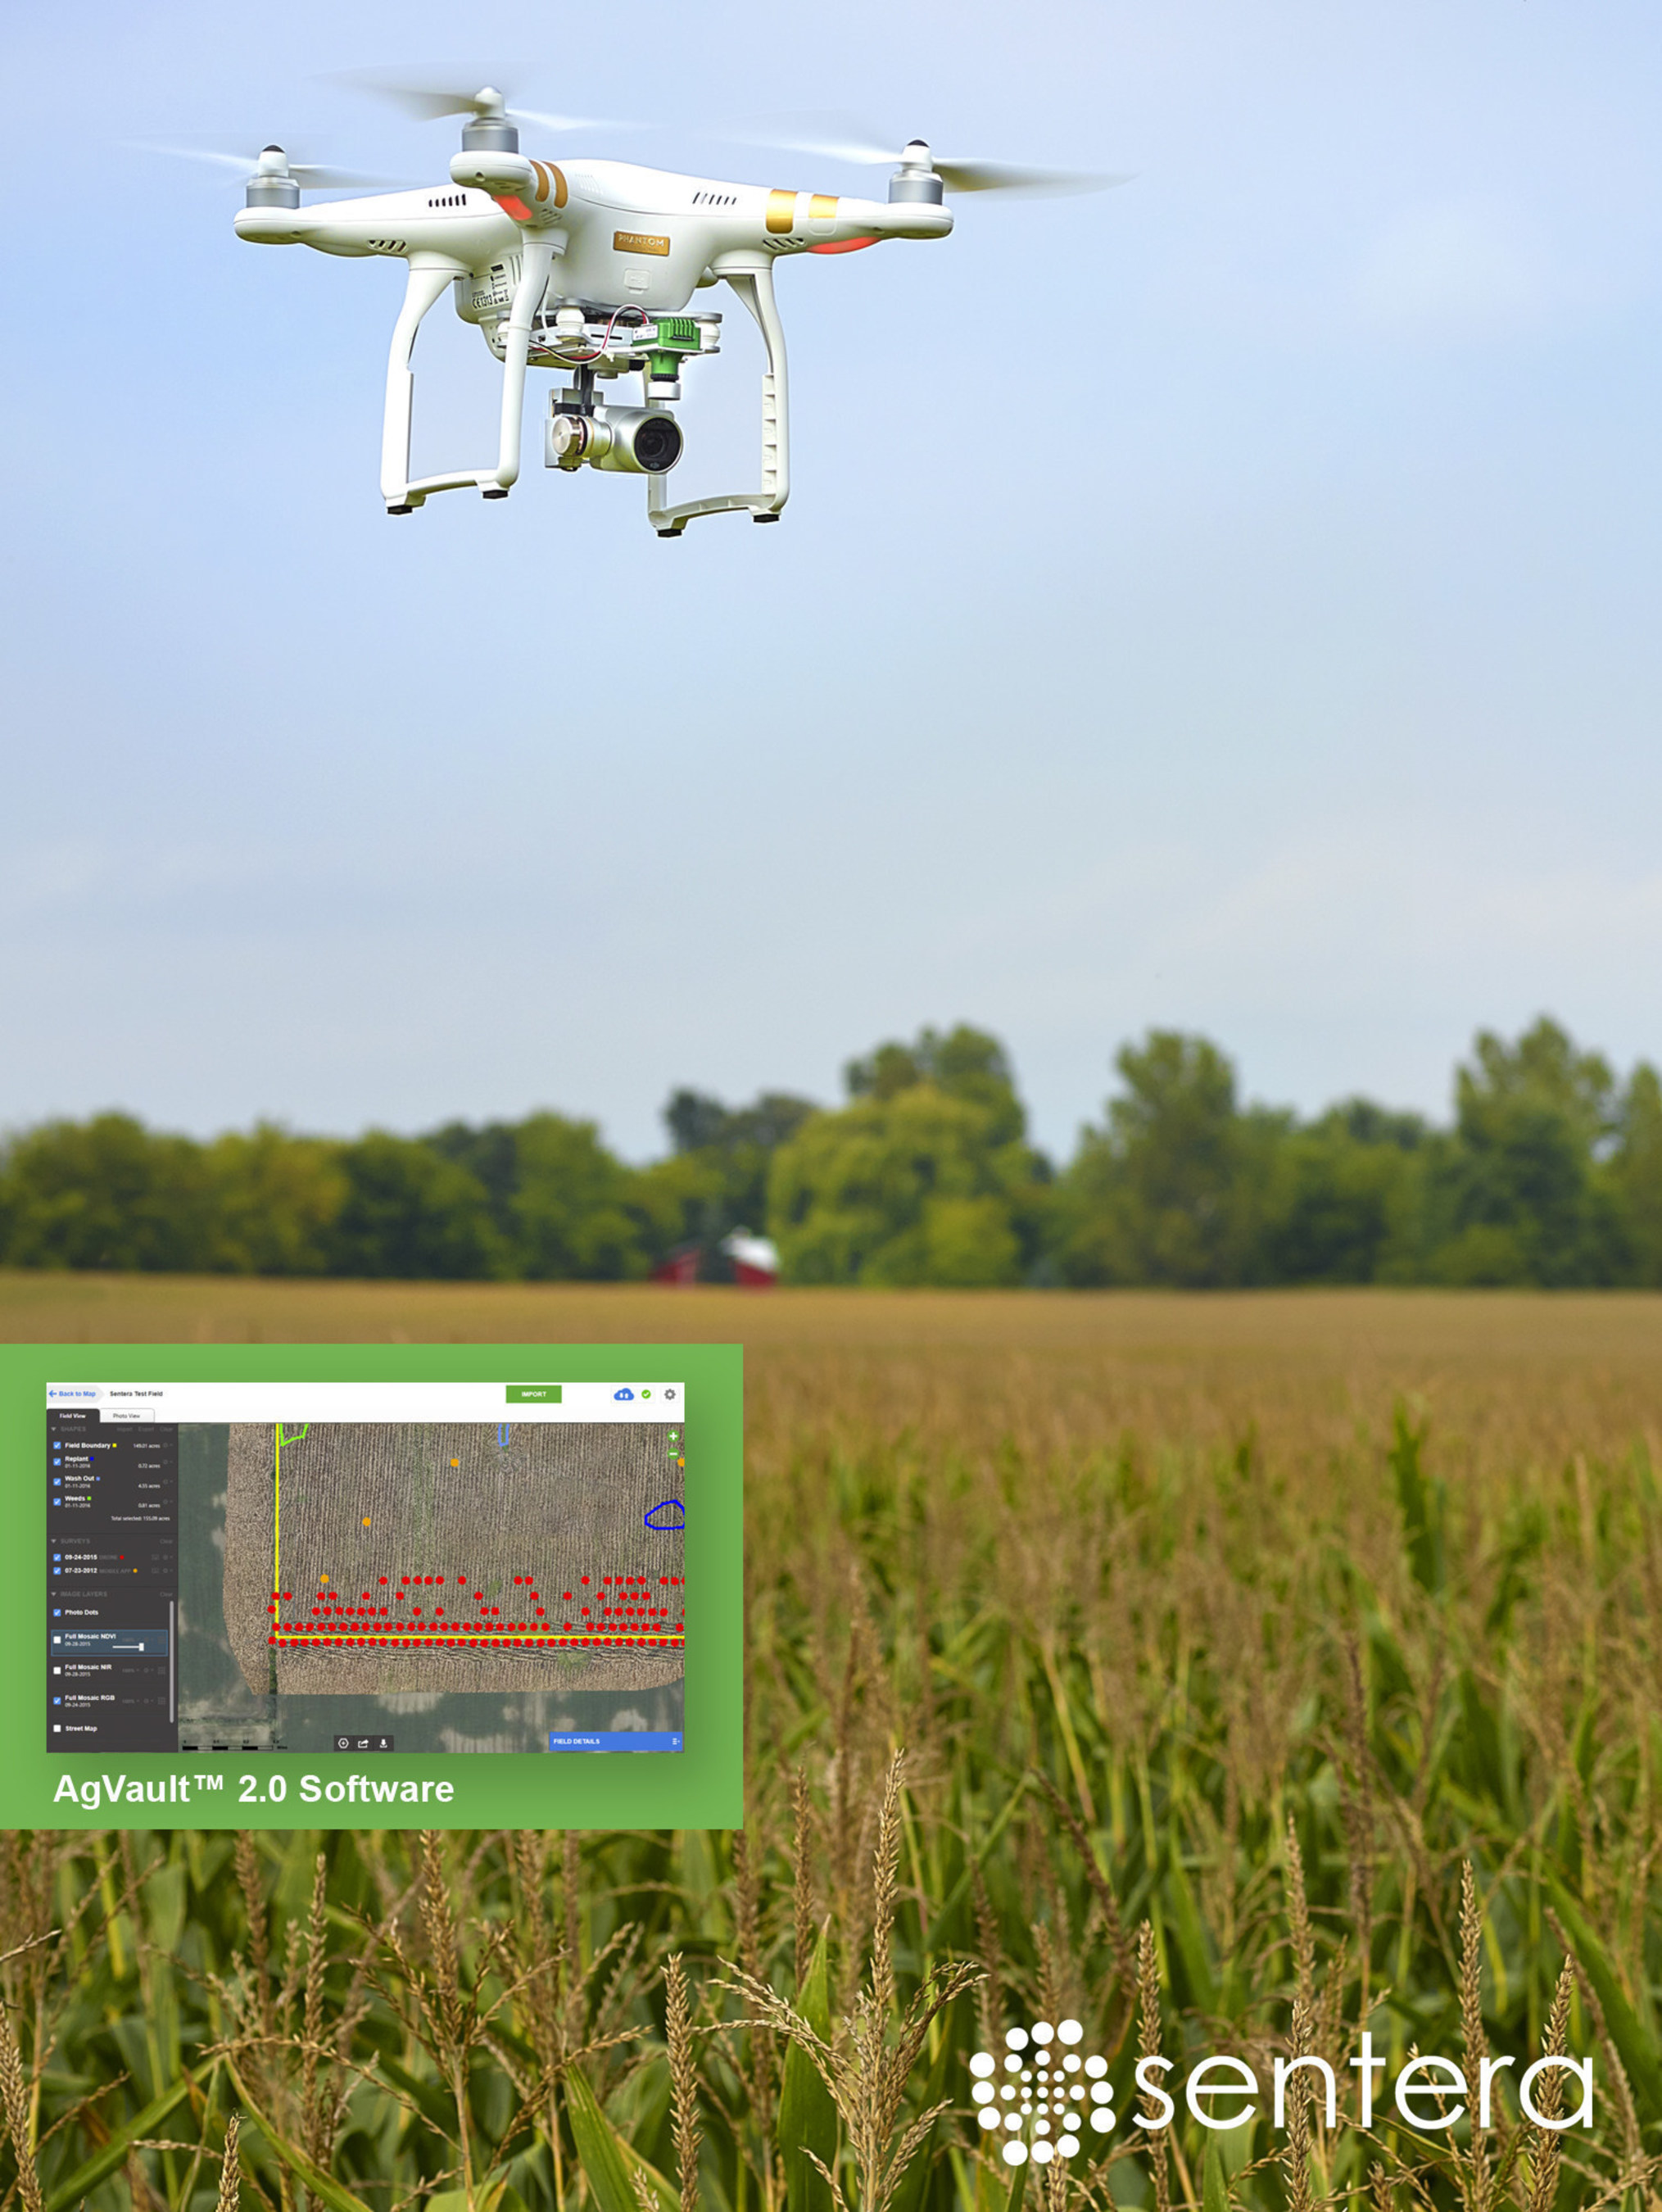 Sentera AgVault(TM) Software Solution works seamlessly with the DJI Phantom 3 NDVI Upgrade; turning a commercially-available drone into a precision scouting tool